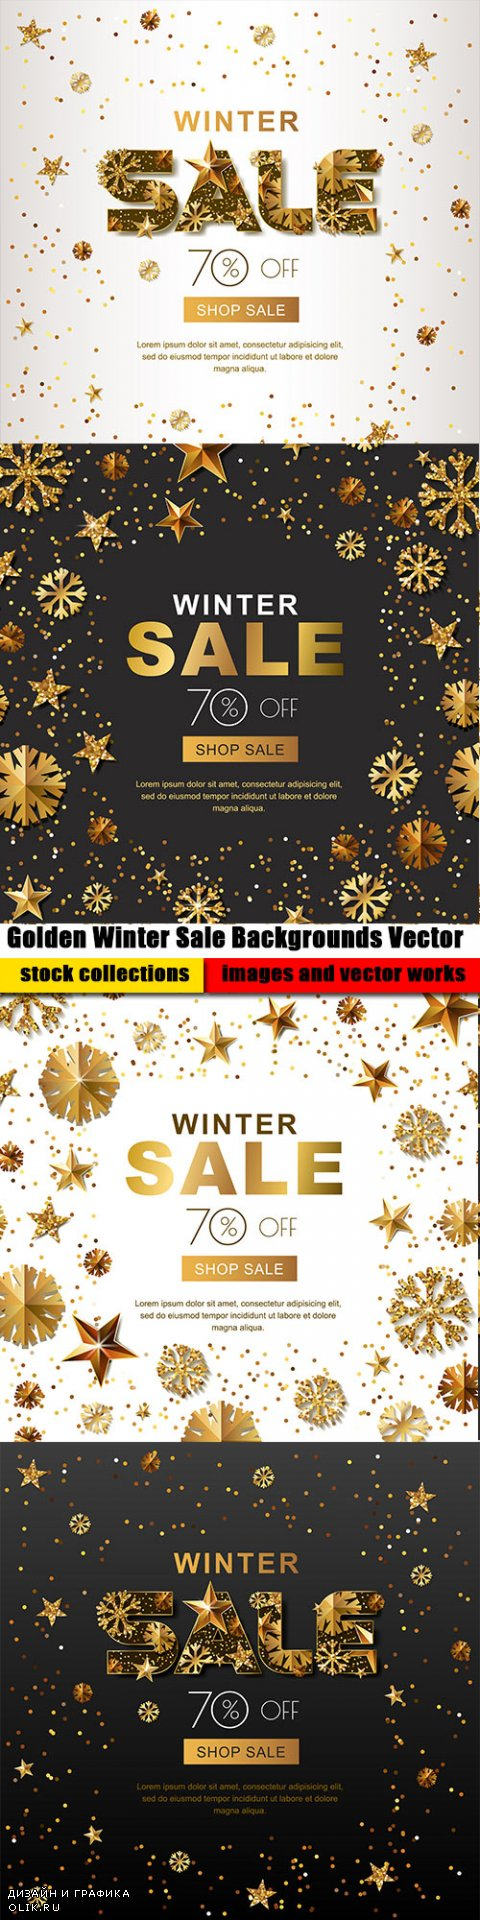 Golden Winter Sale Backgrounds Vector